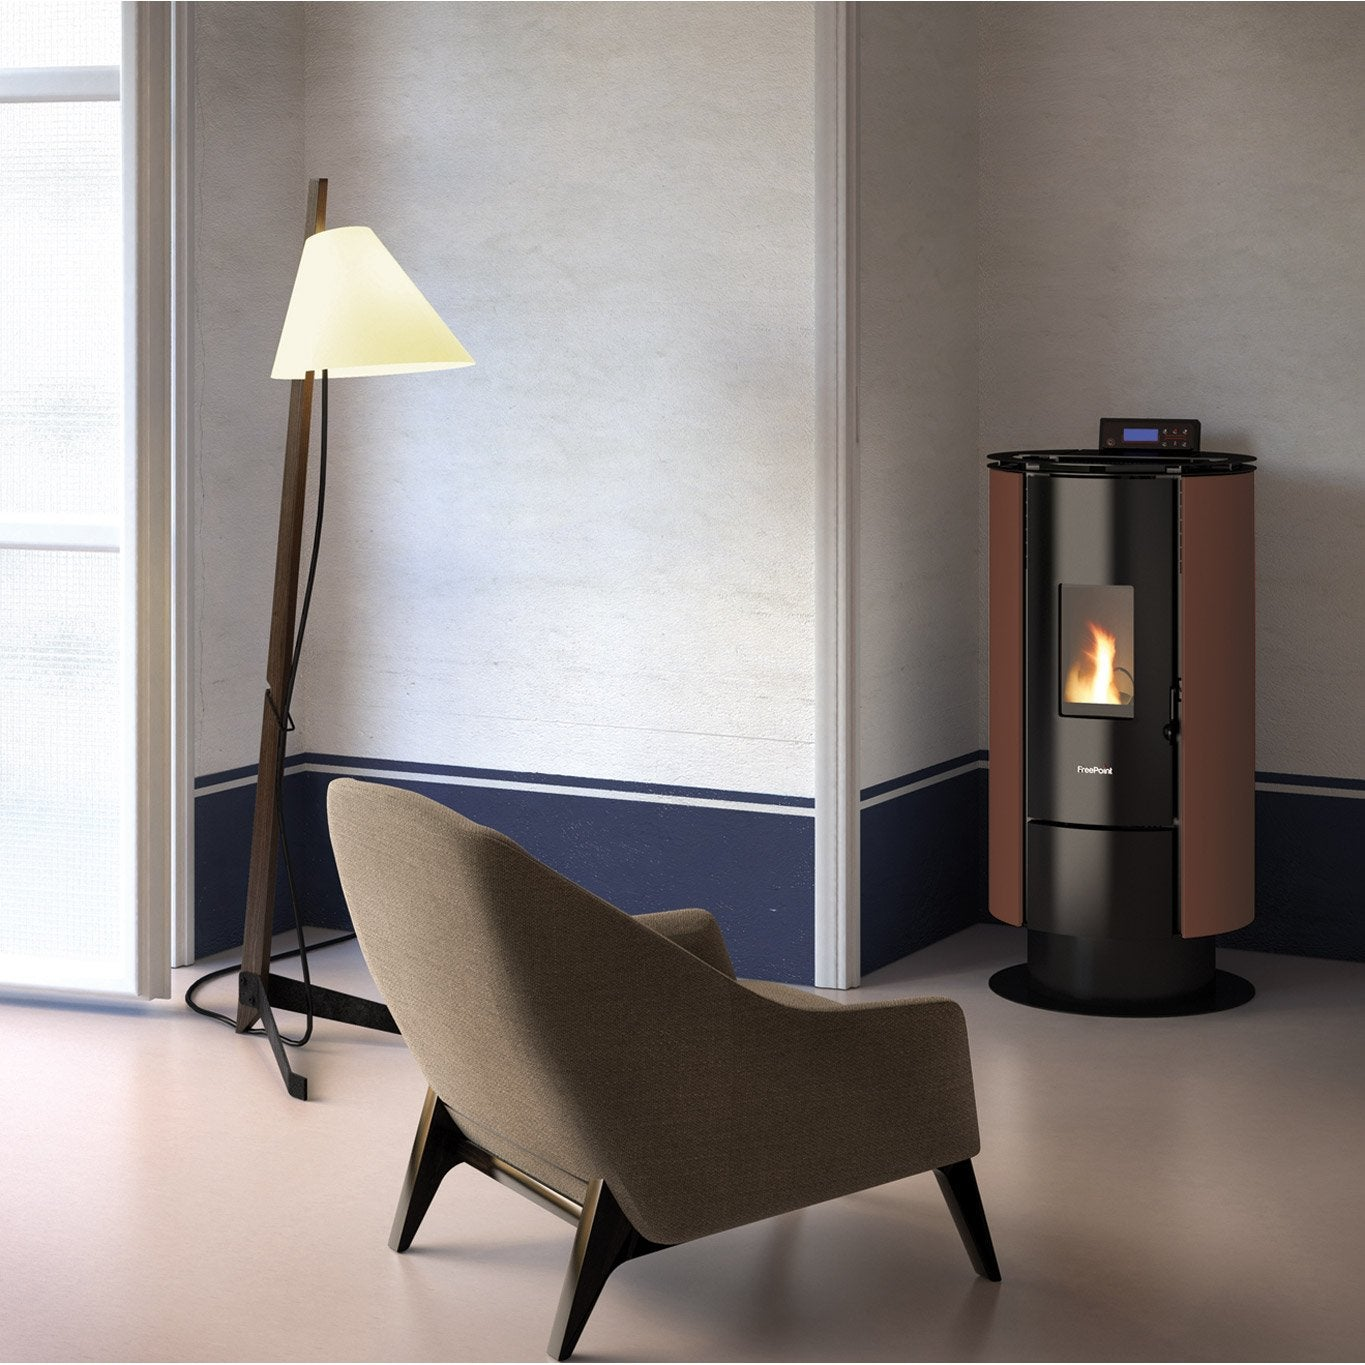 po le granul s freepoint poele a pellet flute moka 6 5 kw leroy merlin. Black Bedroom Furniture Sets. Home Design Ideas